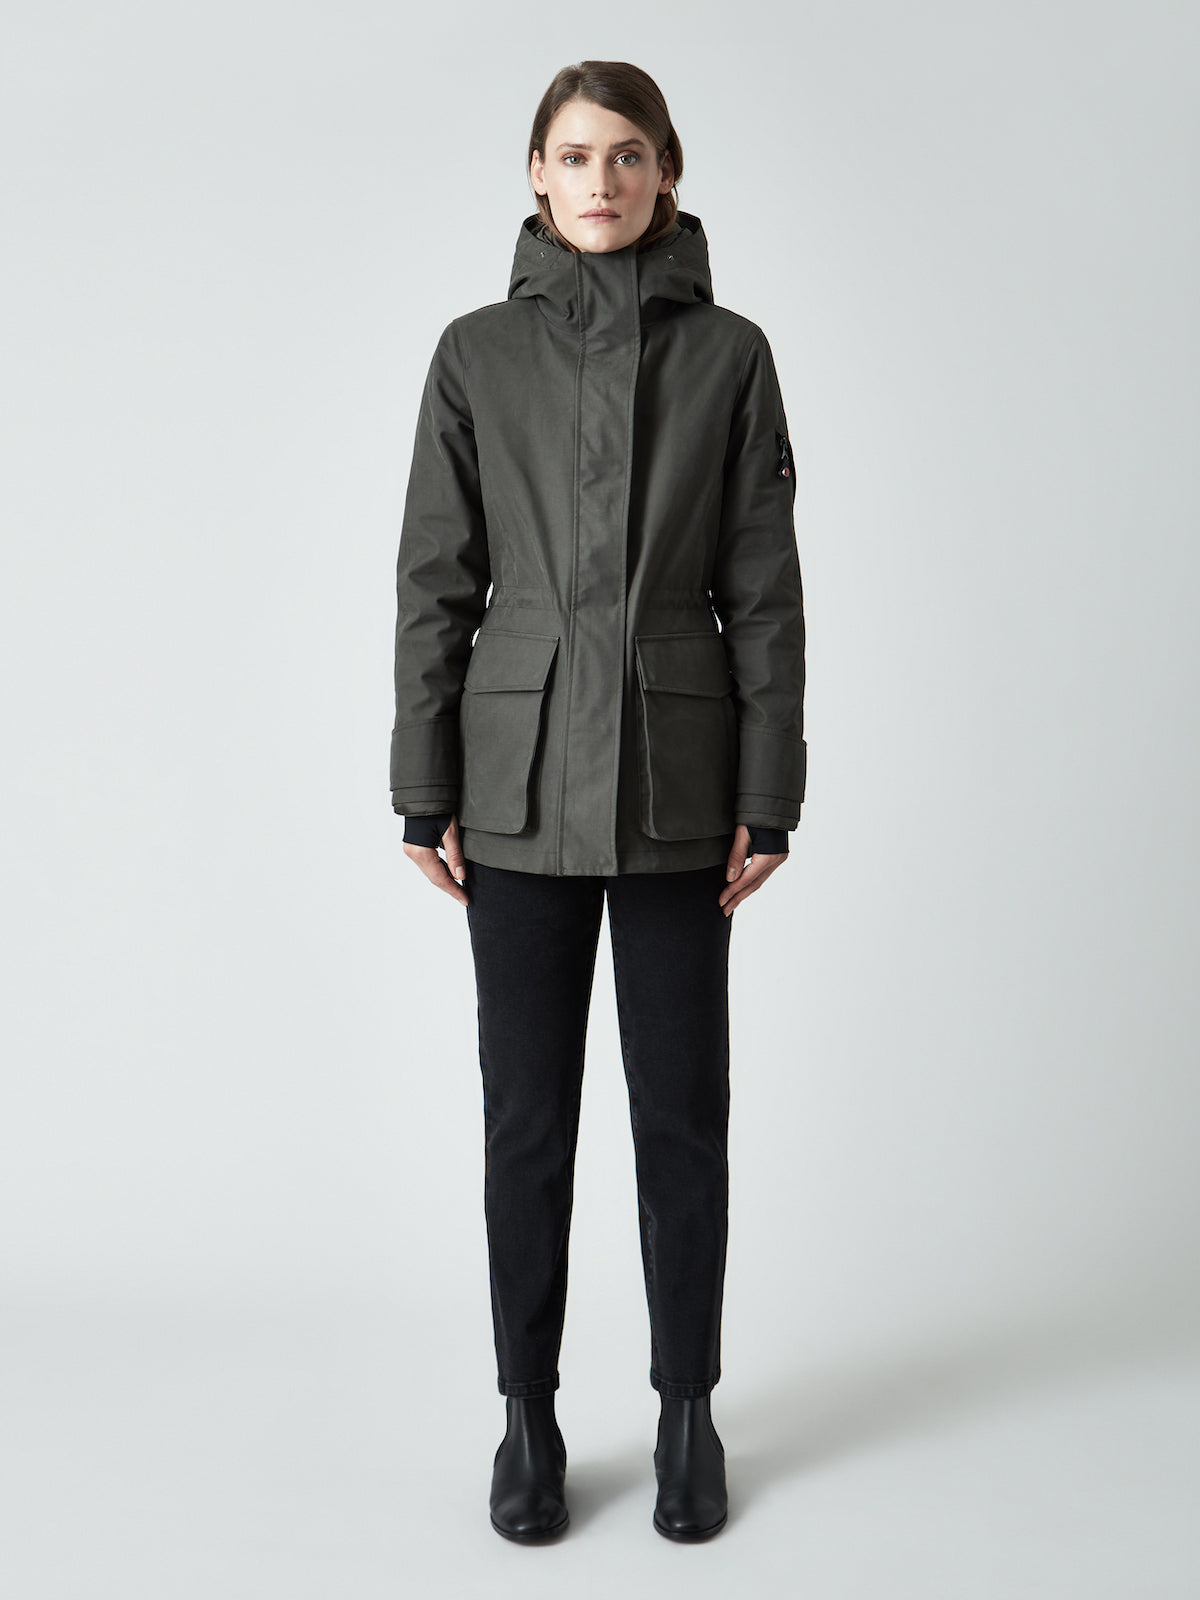 The Mid Parka Coat by 49Winters